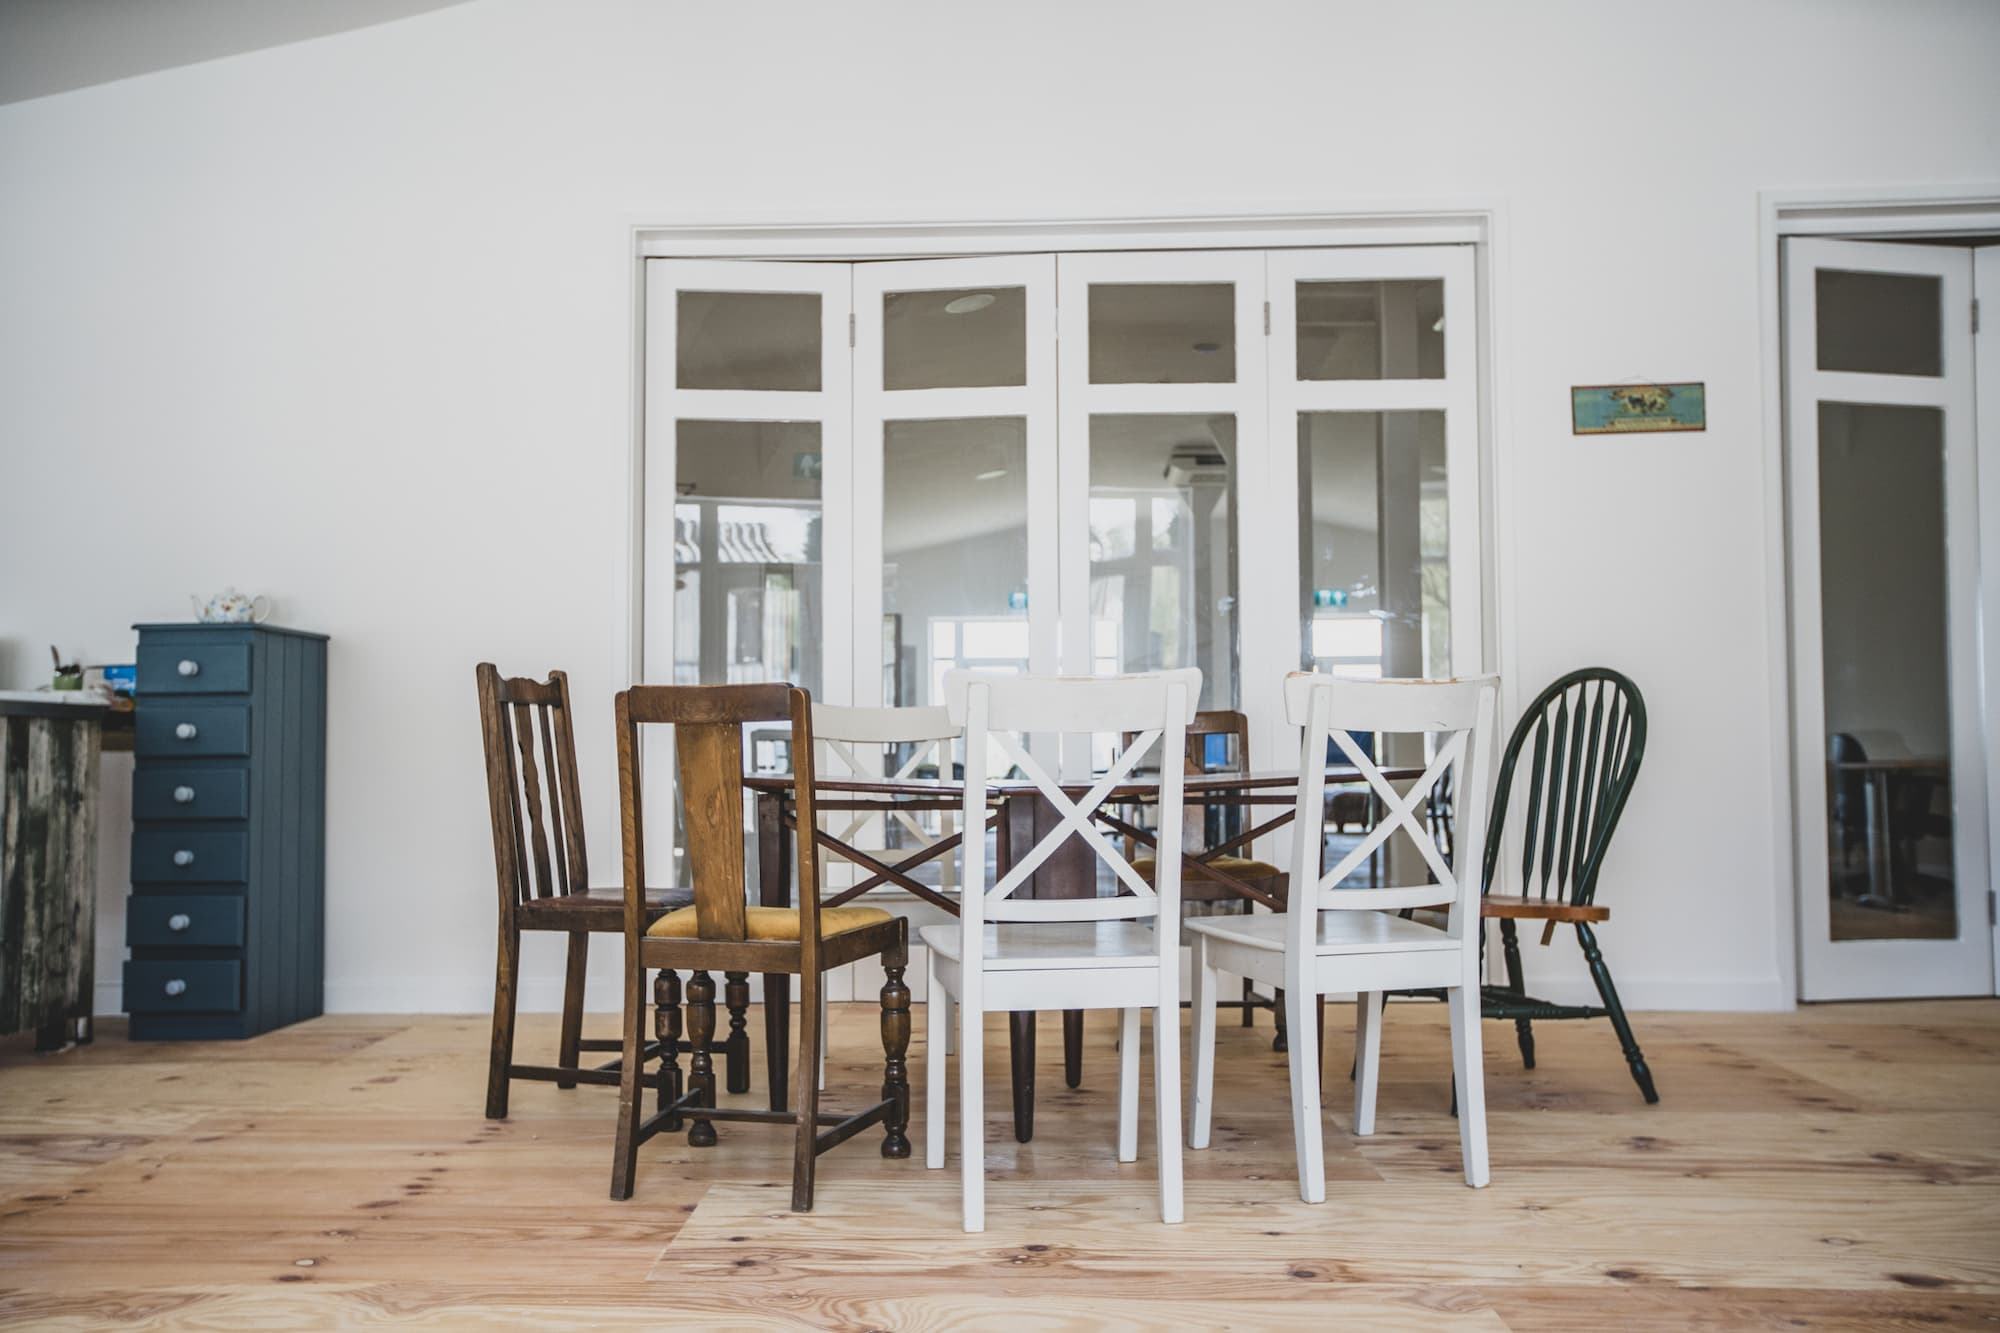 A table surrounded by chairs in a light room with wooden floors and white walls.